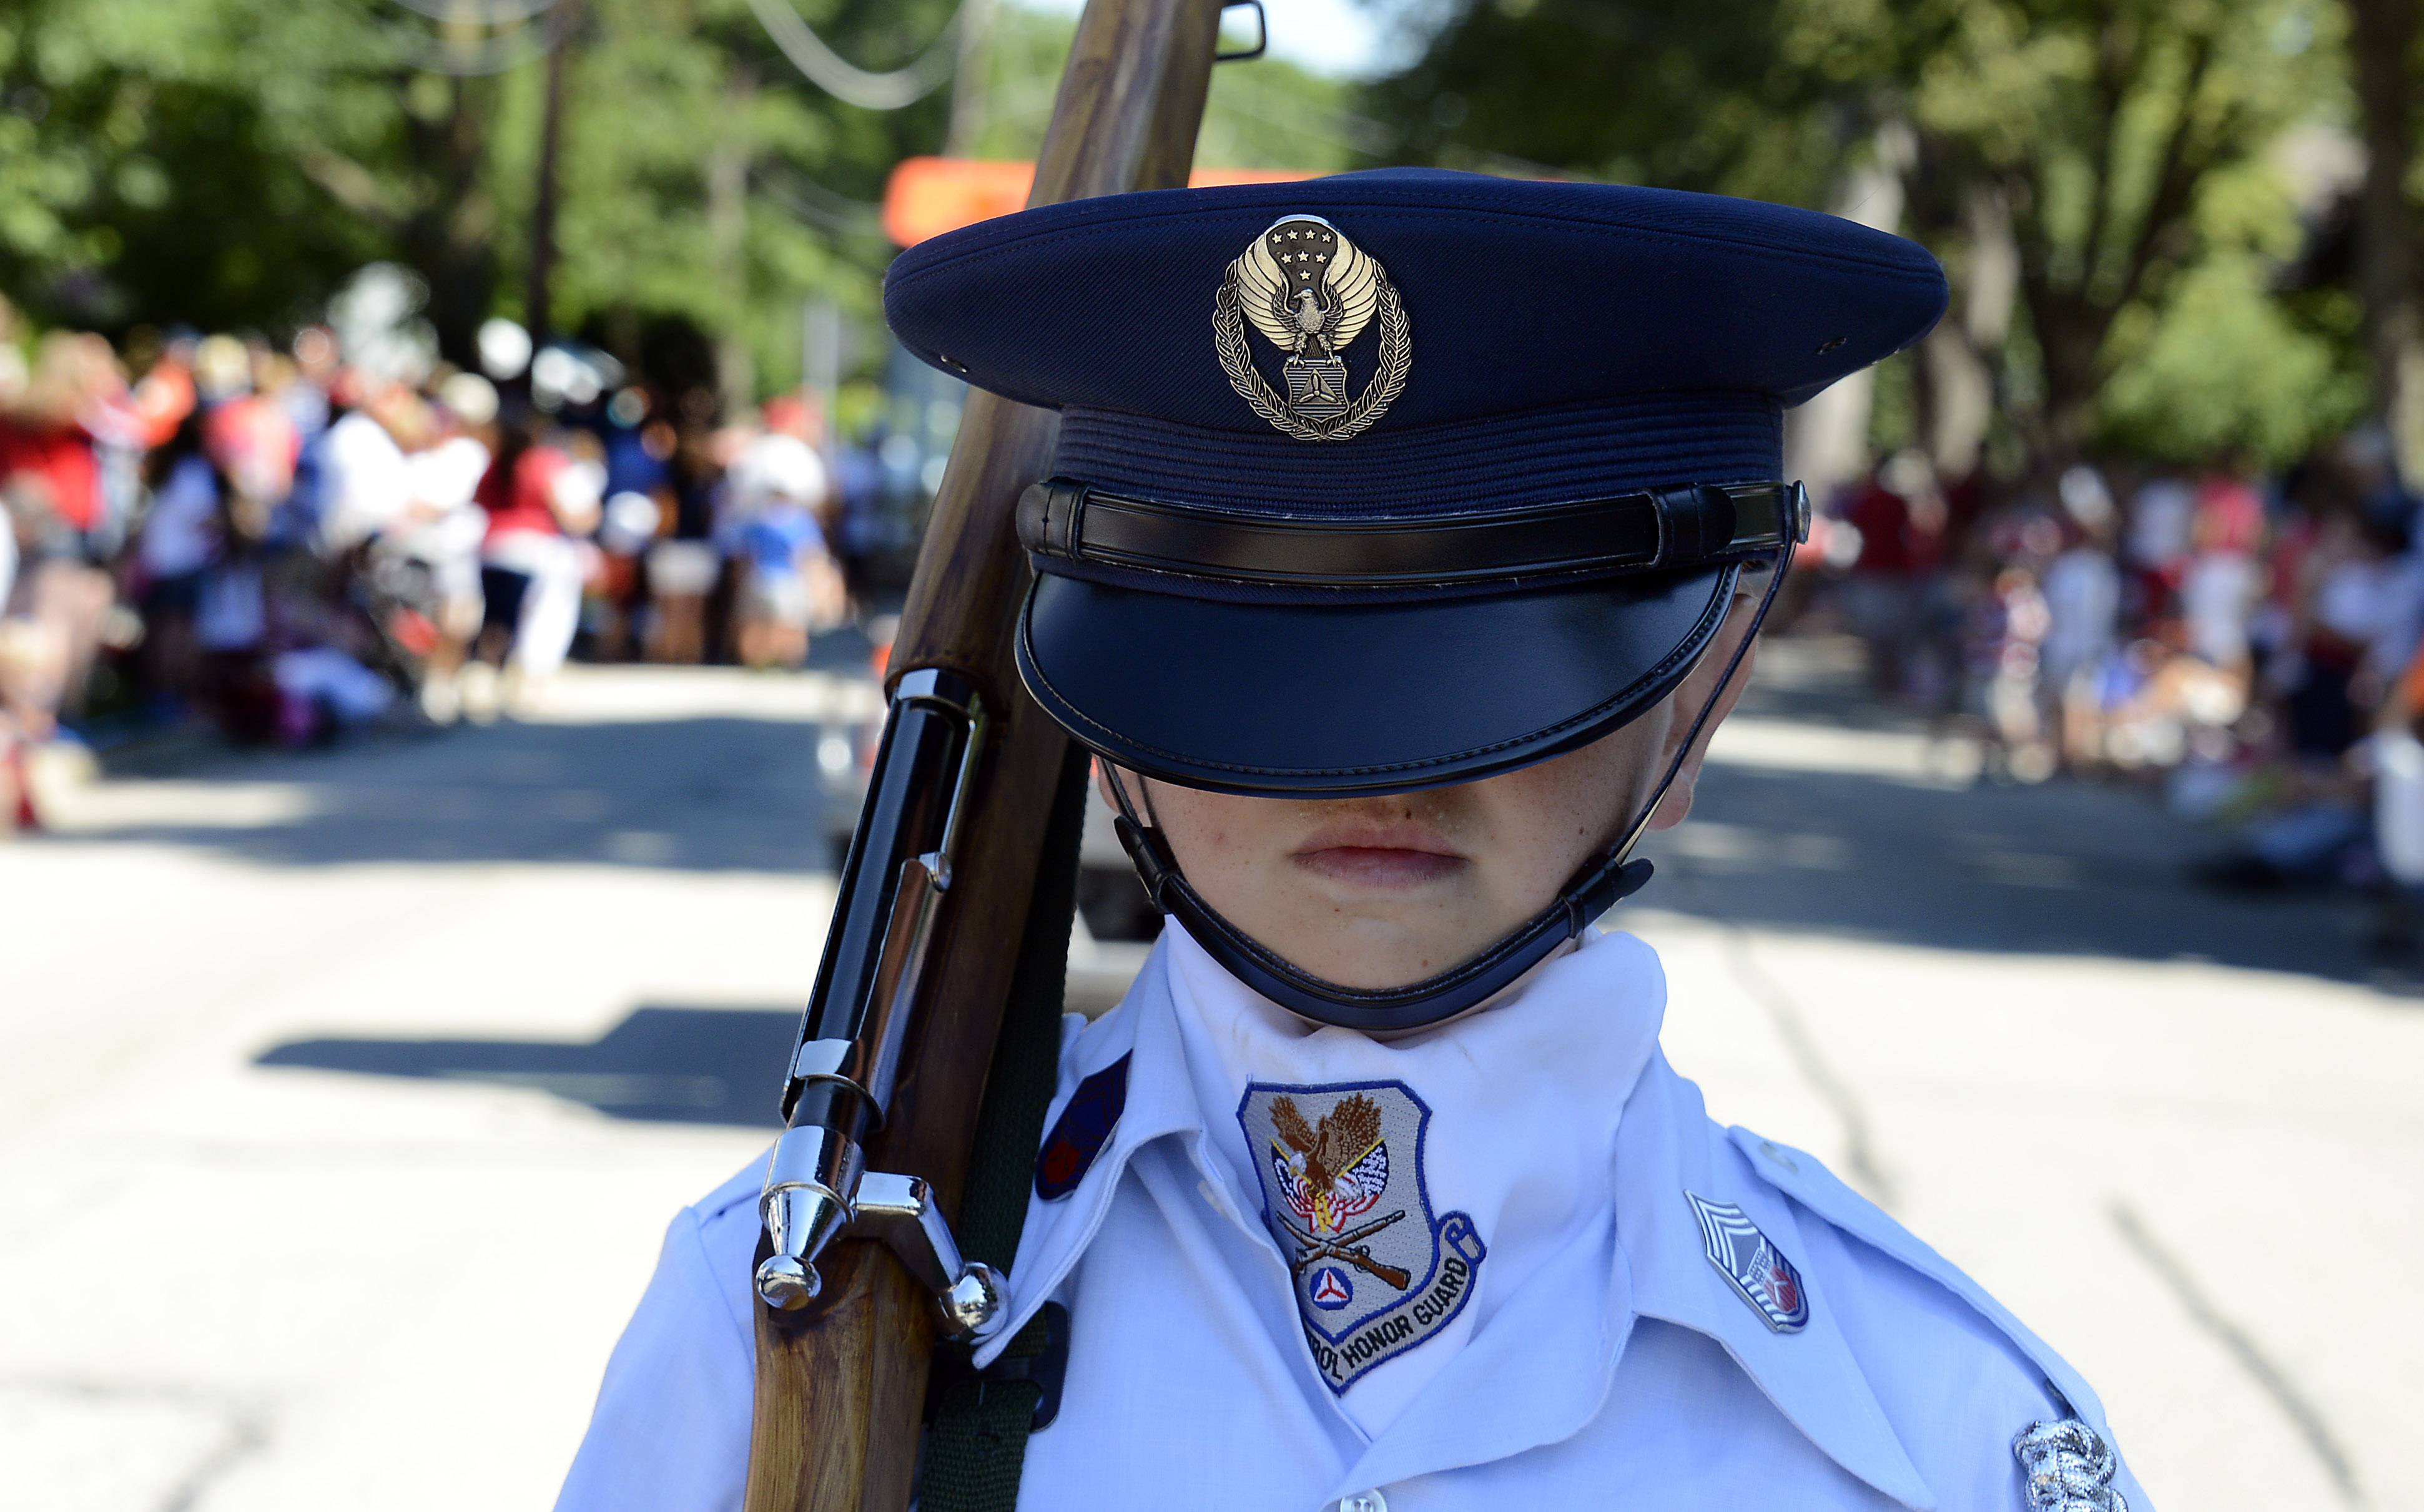 Benjamin Ptak, 14, of Sleepy Hollow marches in the Arlington Heights 4th of July parade as part of the Civil Air Patrol honor guard.